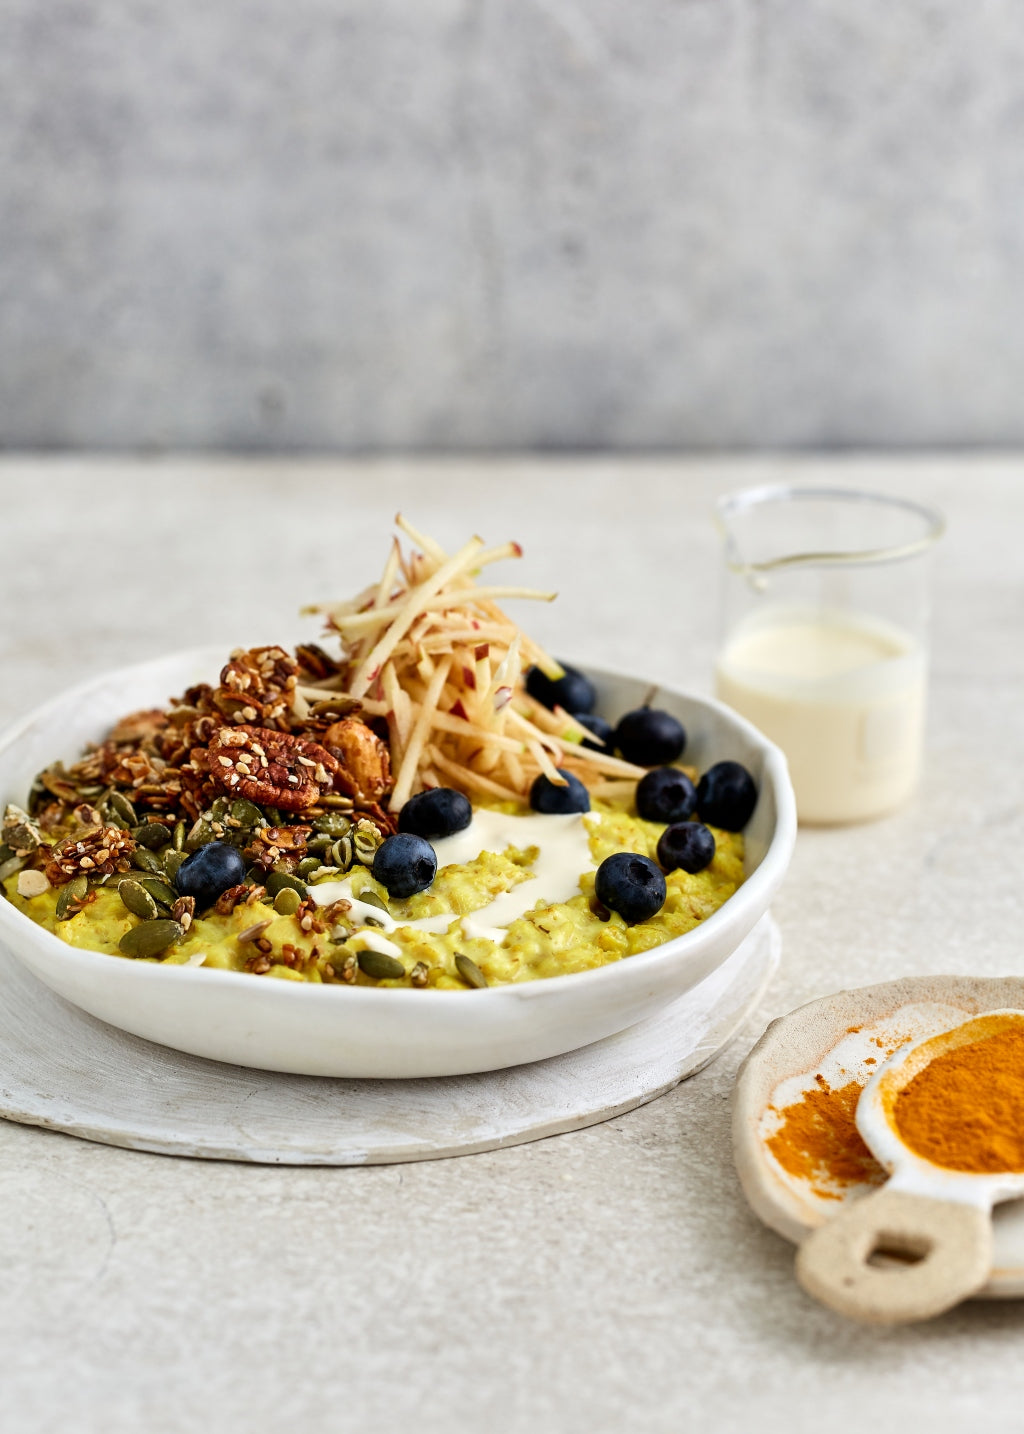 Turmeric Porridge with Toasted Mixed Nuts | Harris Farm Markets